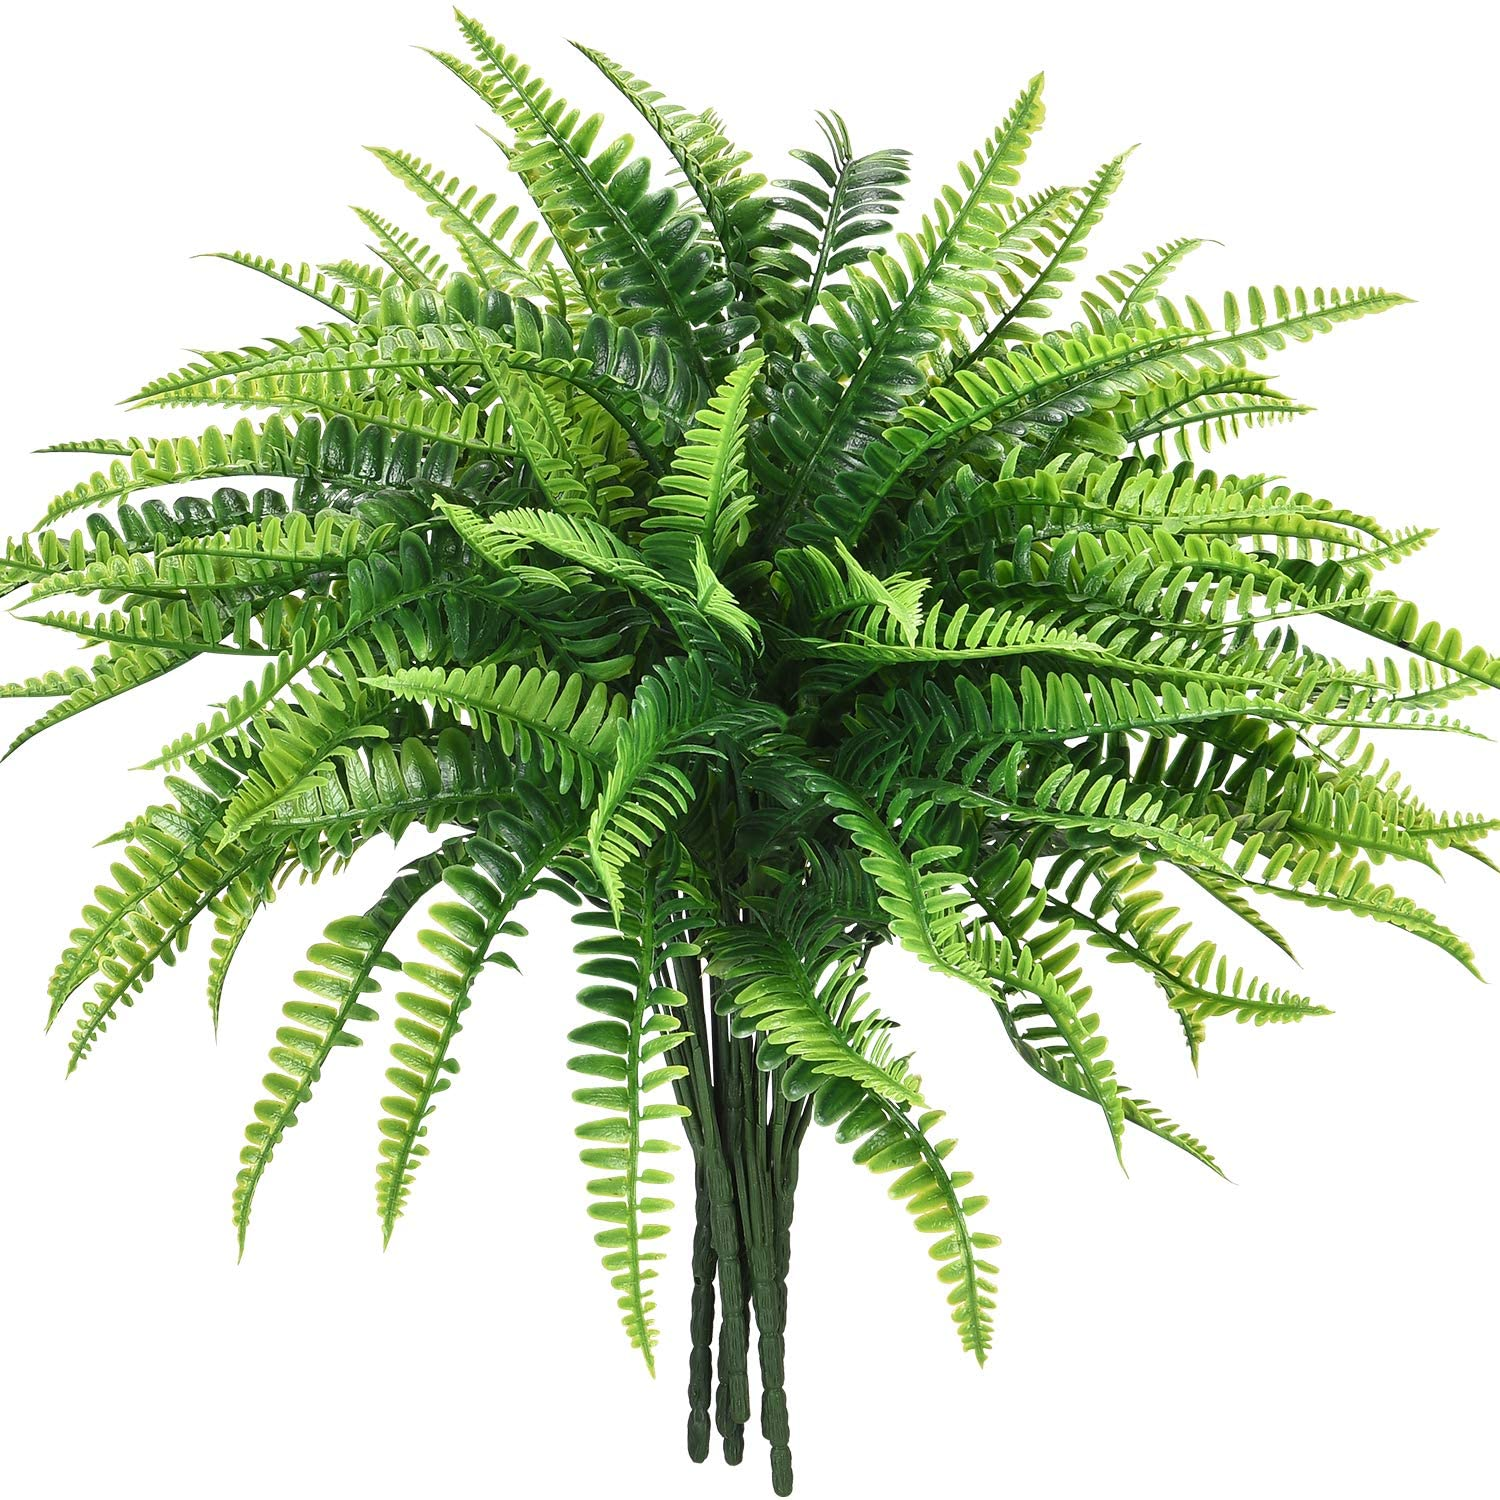 Shiny Flower 6 PCS Artificial Shrubs Fake Boston Fern Plants Natural Fern Bushes Greenery Bunches Vivid Realistic Arrangements Decoration for Veranda Office Garden House Indoor Outdoor